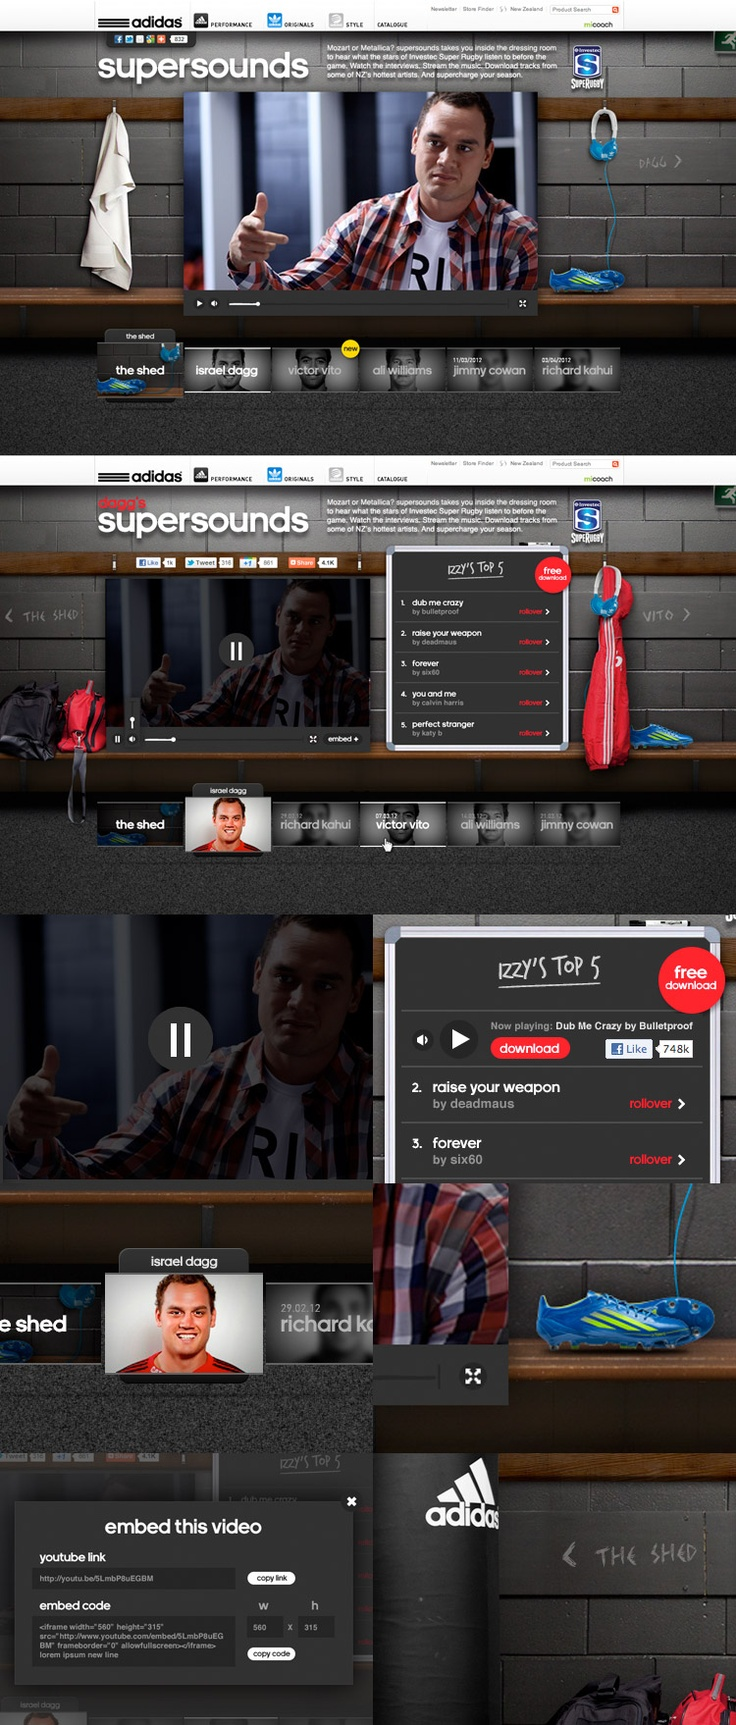 adidas Supersounds campaign site - by griffinabox